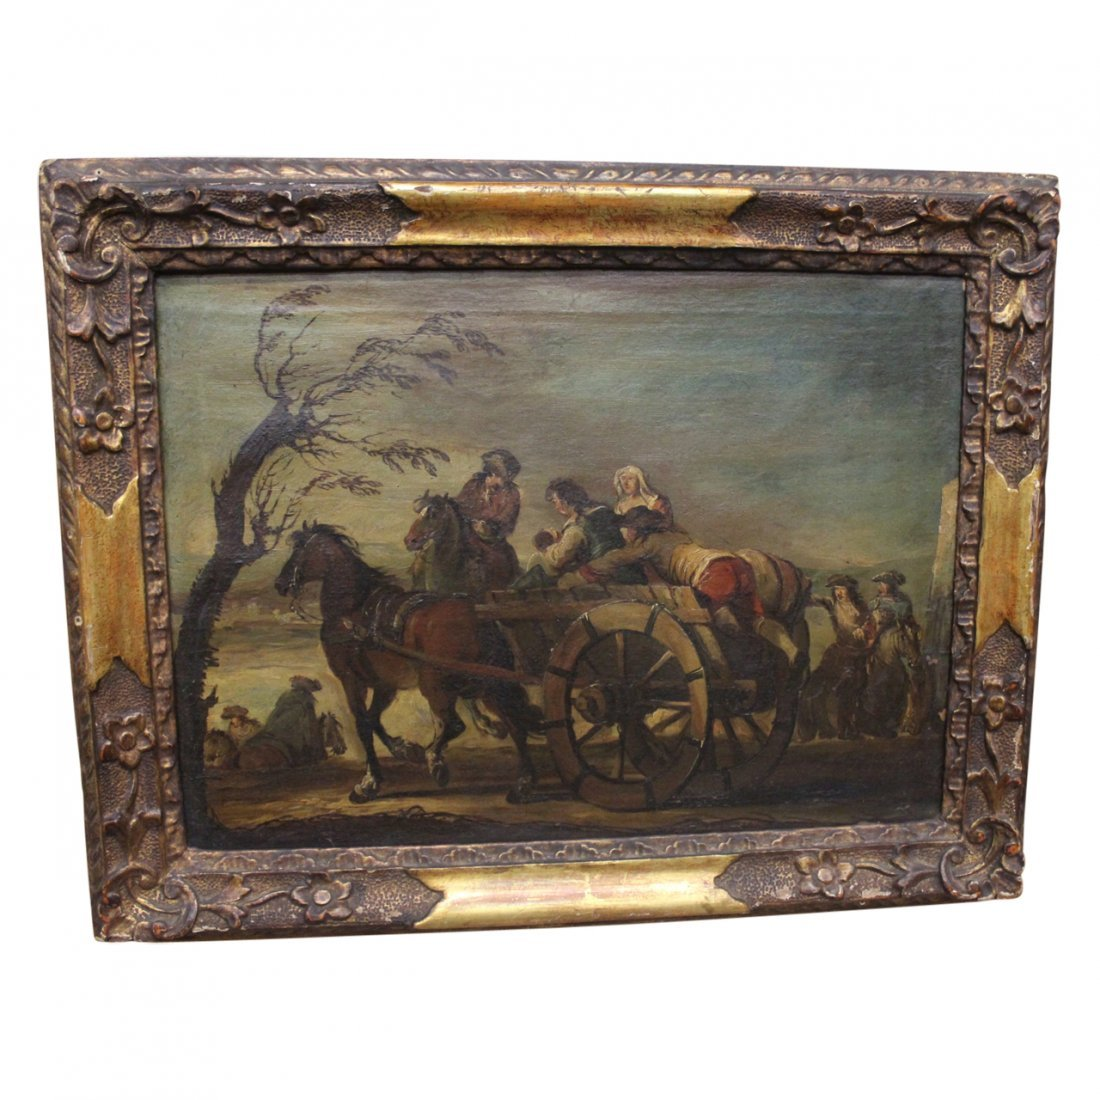 Antique Oil Painting in the Manner of Goya